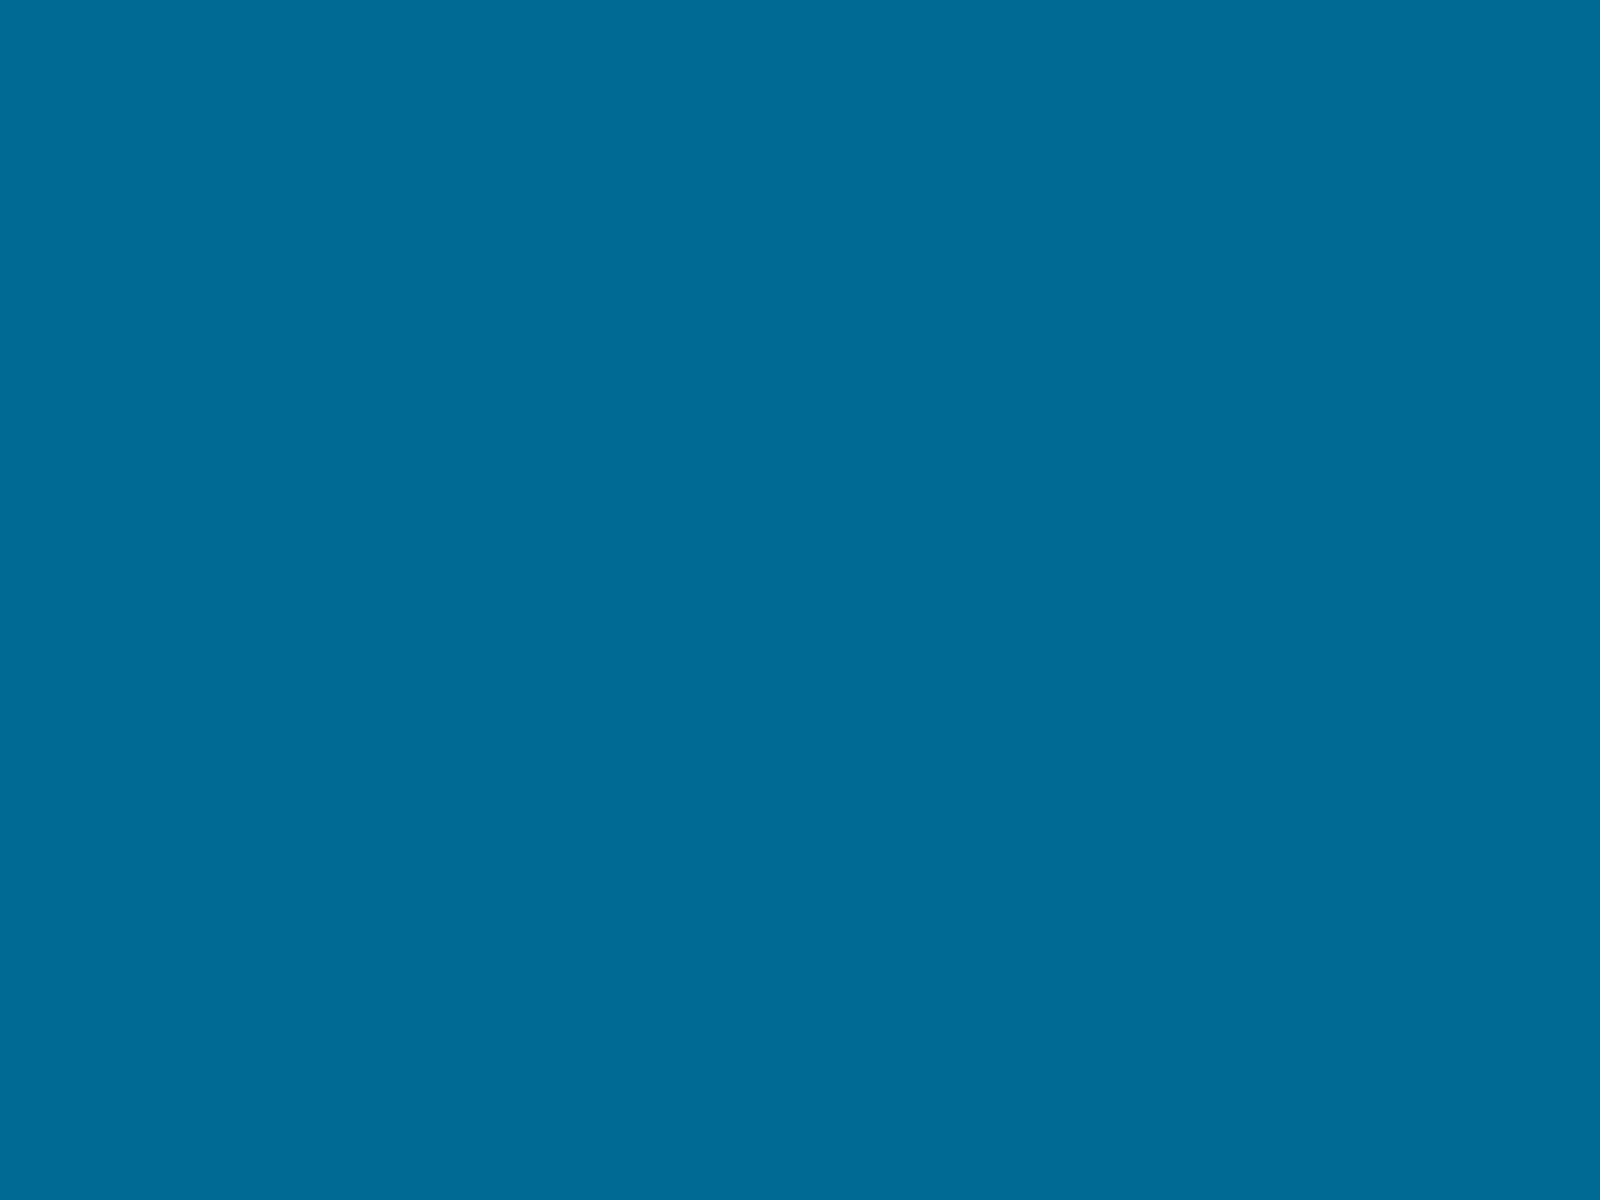 1600x1200 Sea Blue Solid Color Background